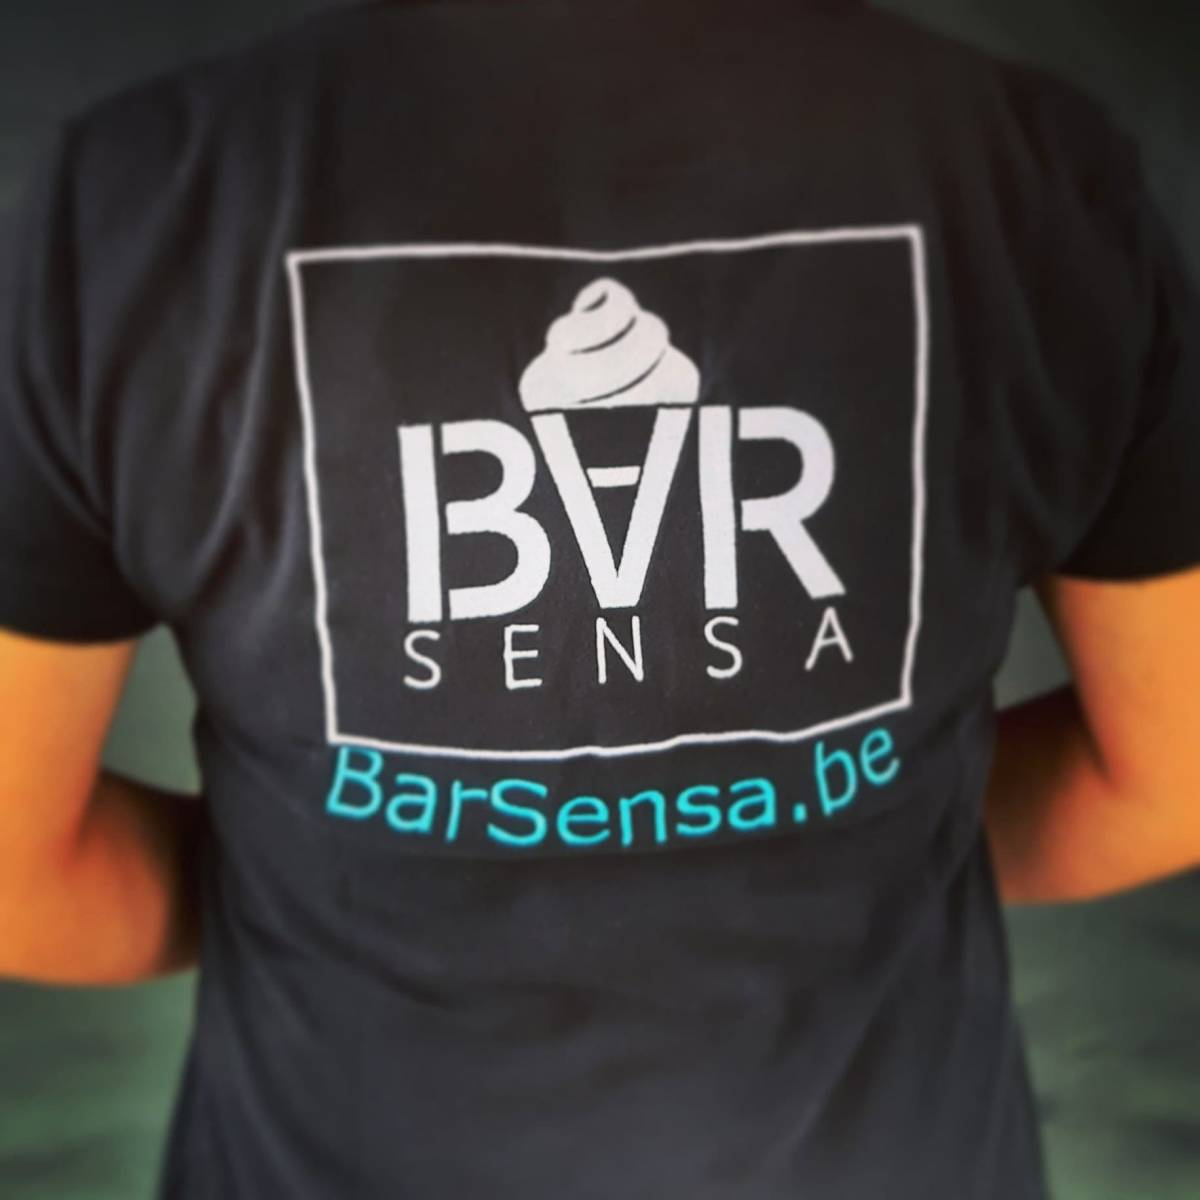 BarSensa - Catering - Dessert - Ijs - Foodtruck - House of Weddings - 39